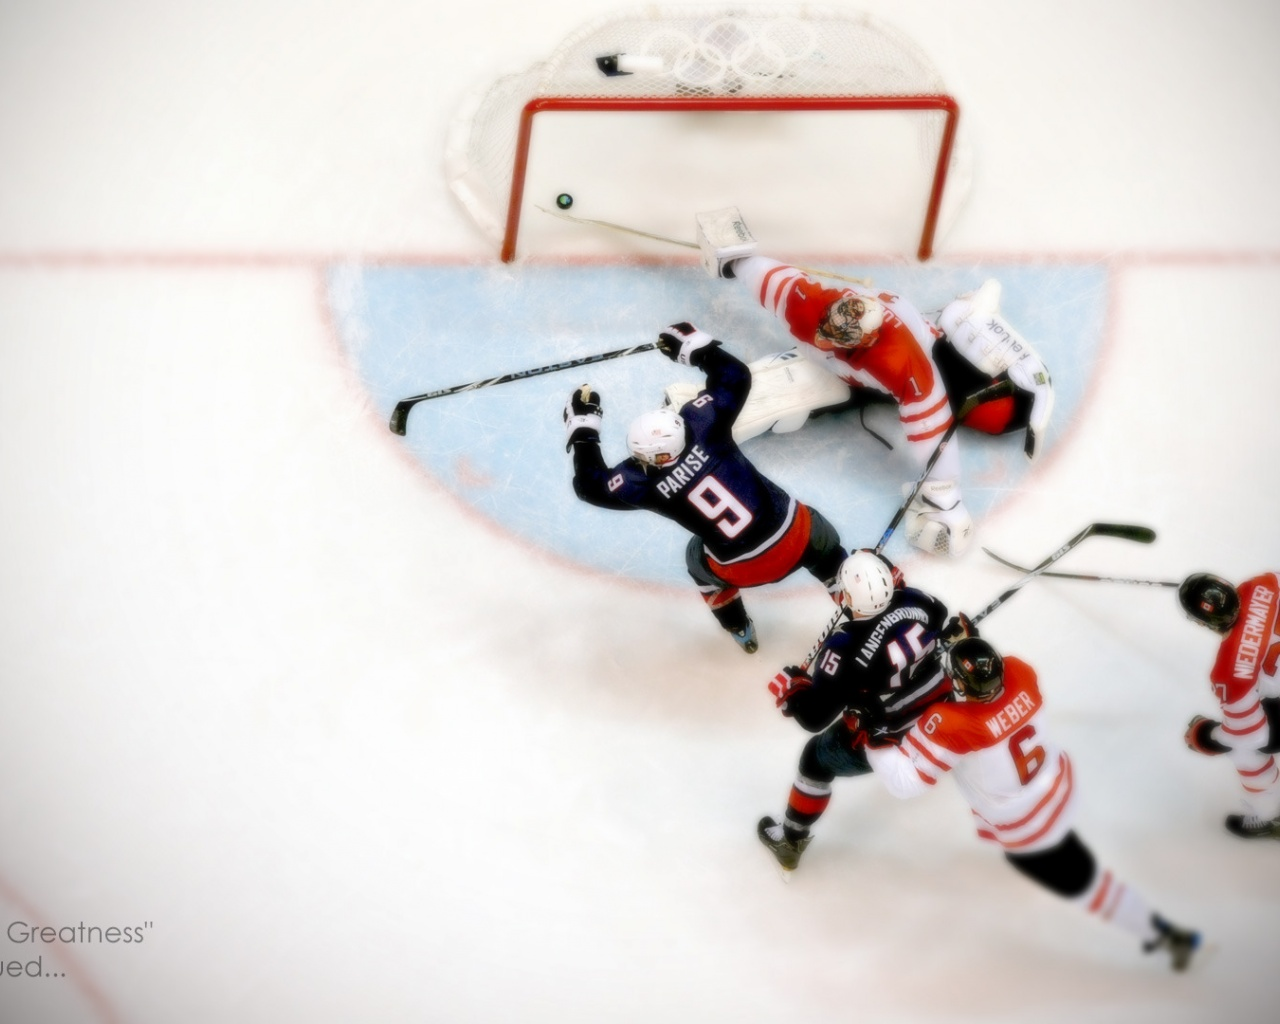 1280x1024 Winter Olympics Hockey Game Desktop Pc And Mac Wallpaper